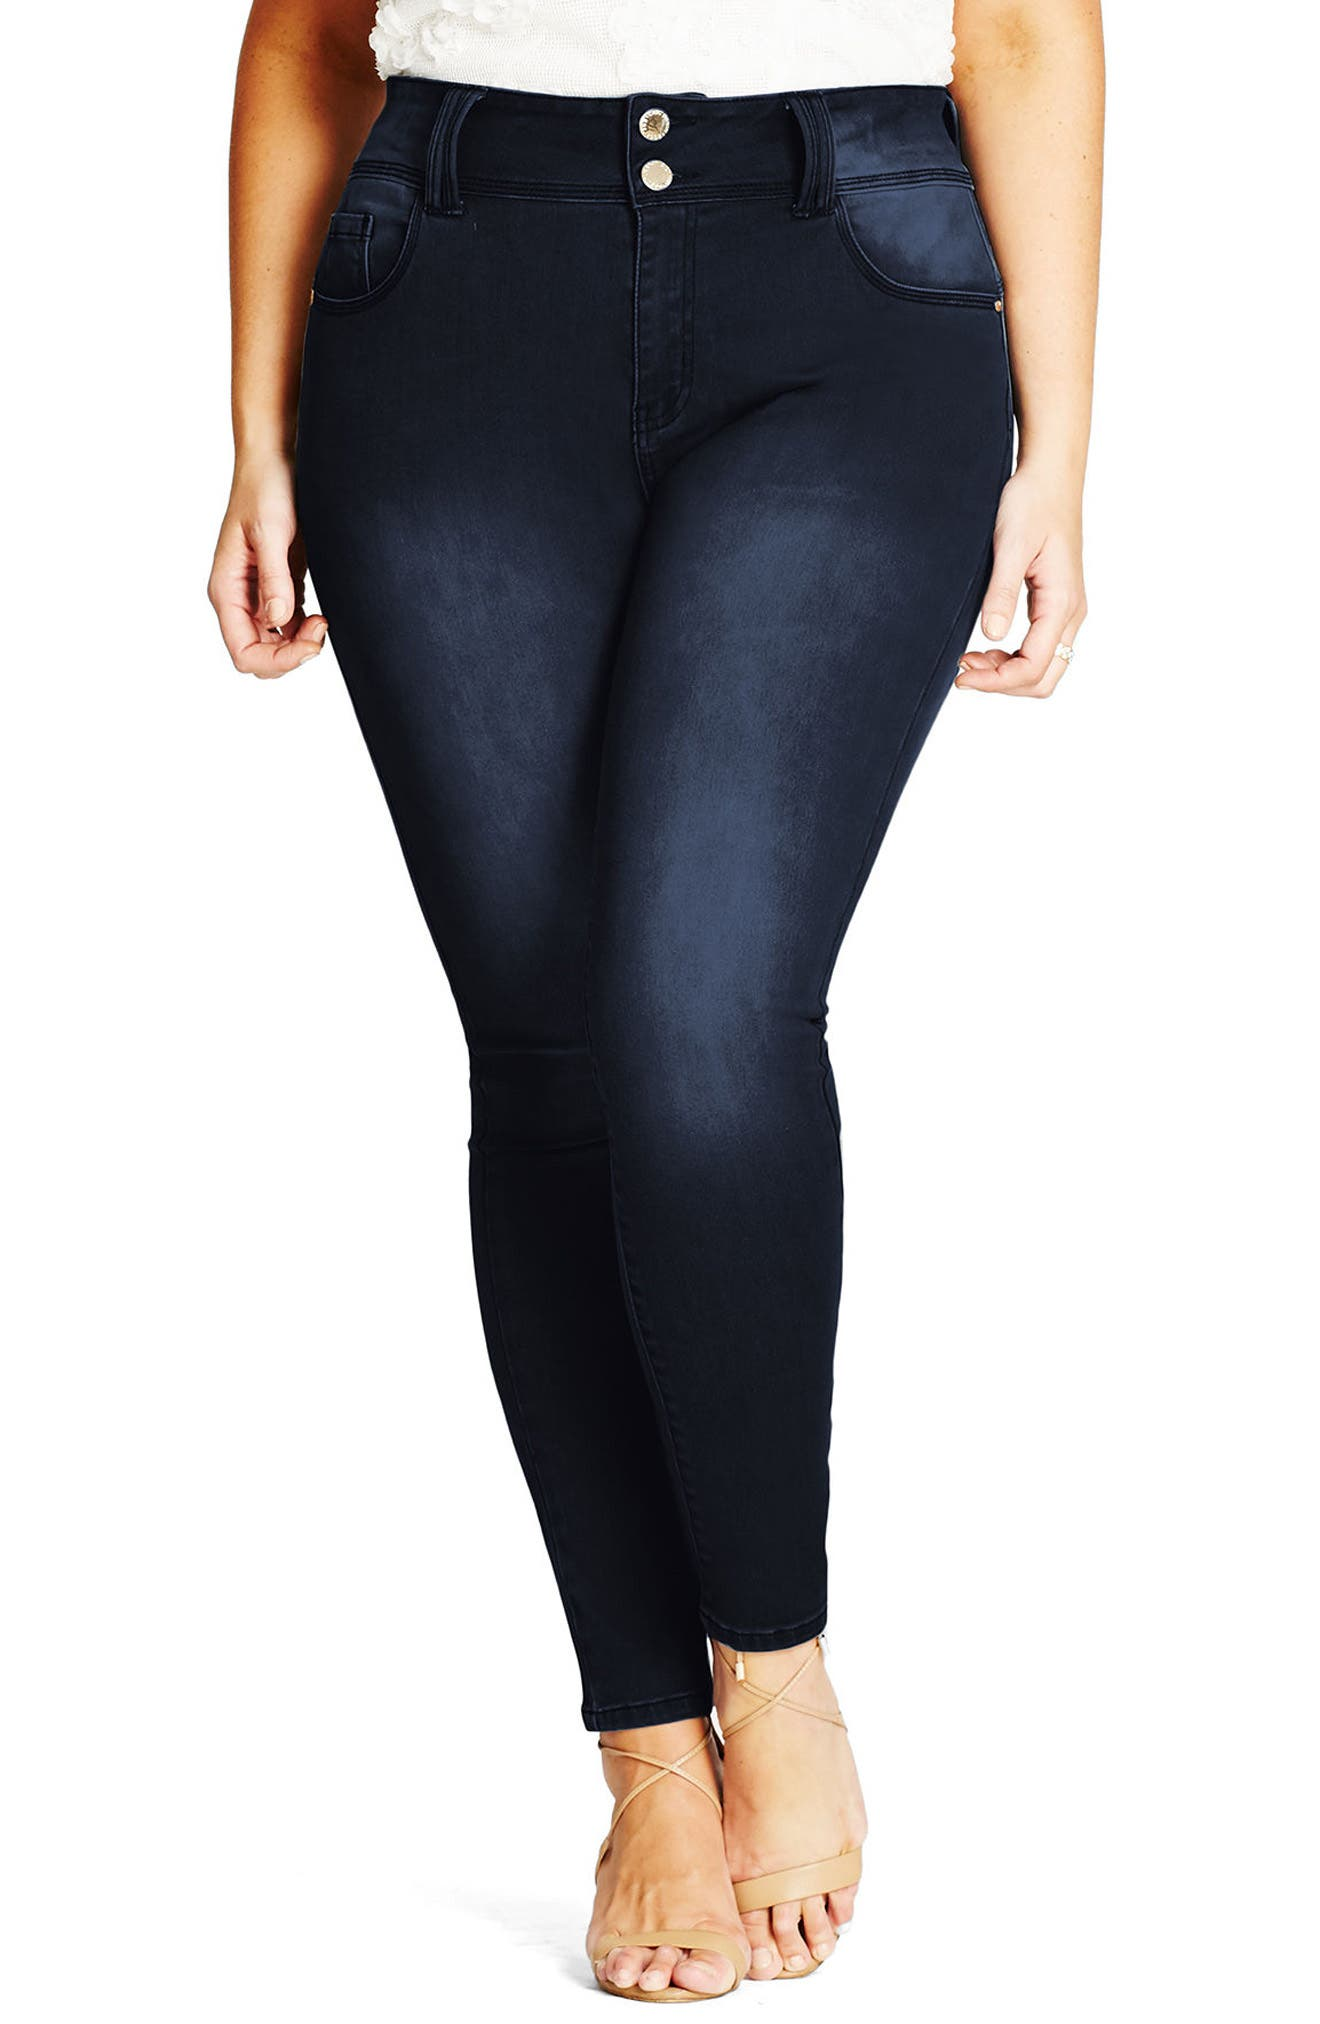 Alternate Image 1 Selected - City Chic Asha Skinny Jeans (Plus Size)